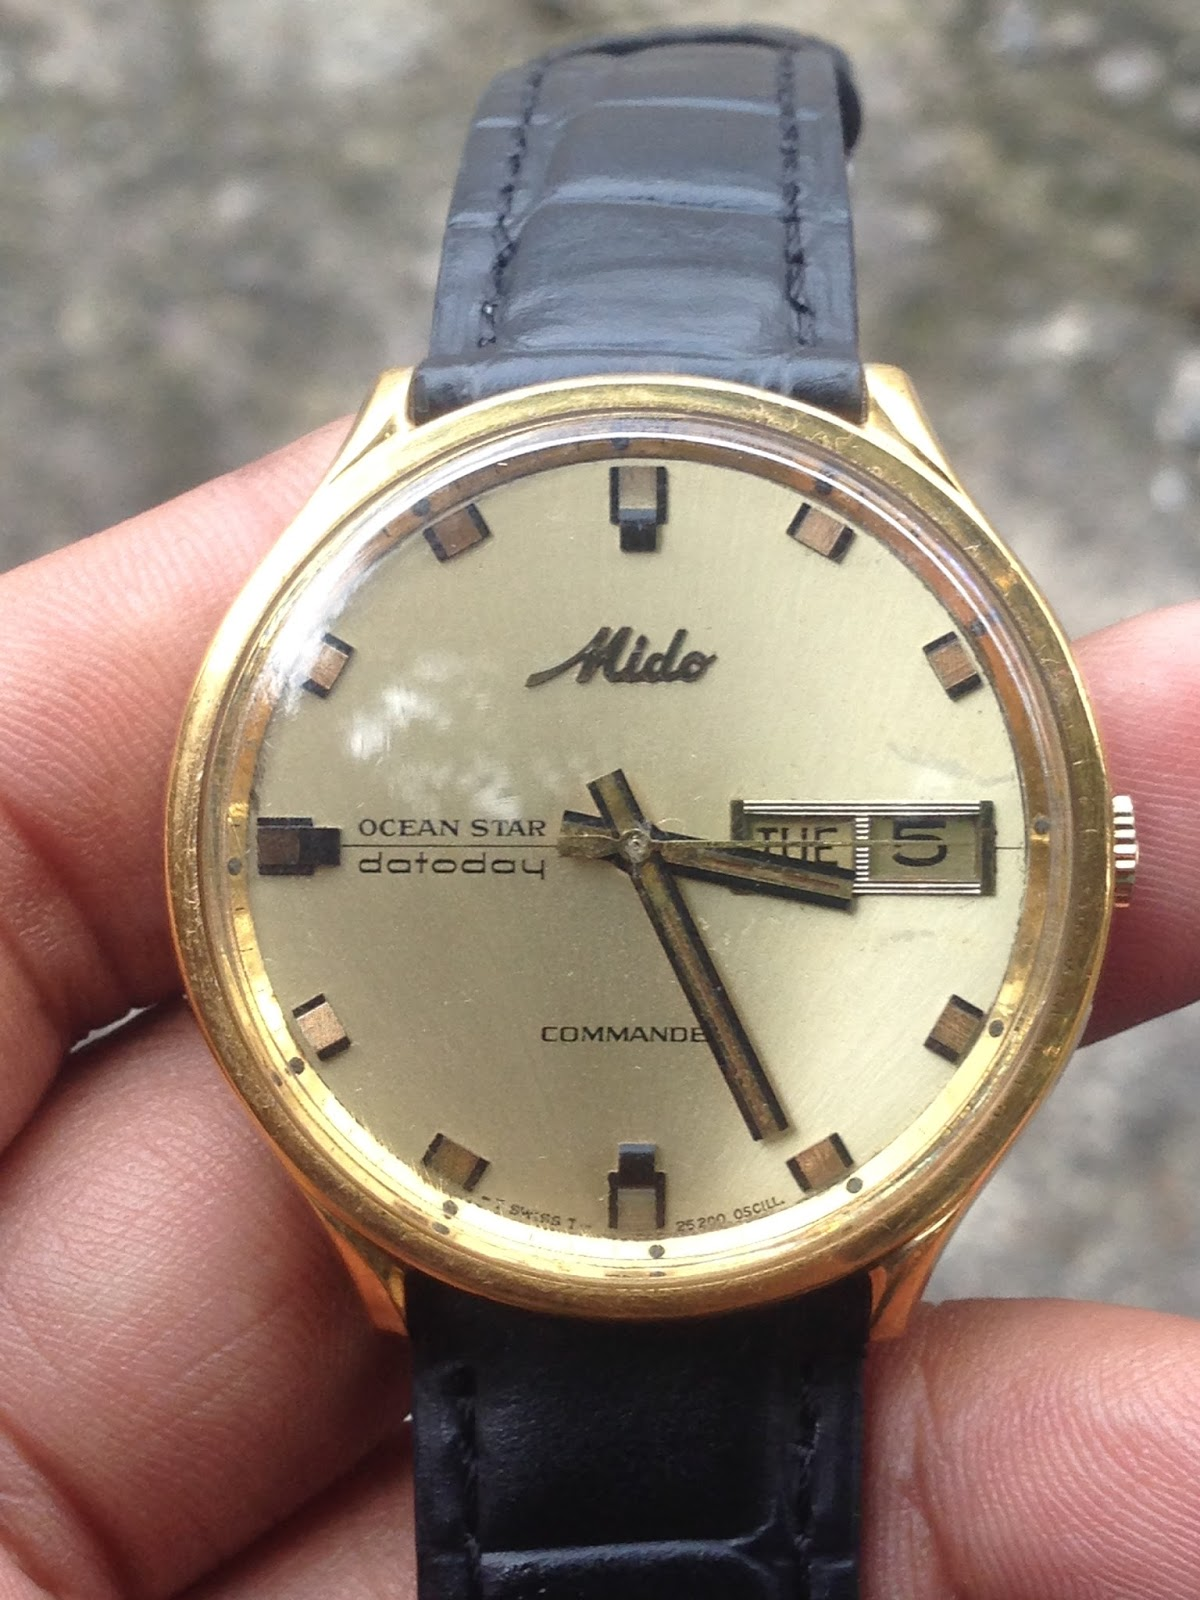 Mido Commander Ocean Star Gold Plate Swiss Made( FOR SALE). Jam tangan  jadul merk mido commander otomatis ... 2cf1e3266e